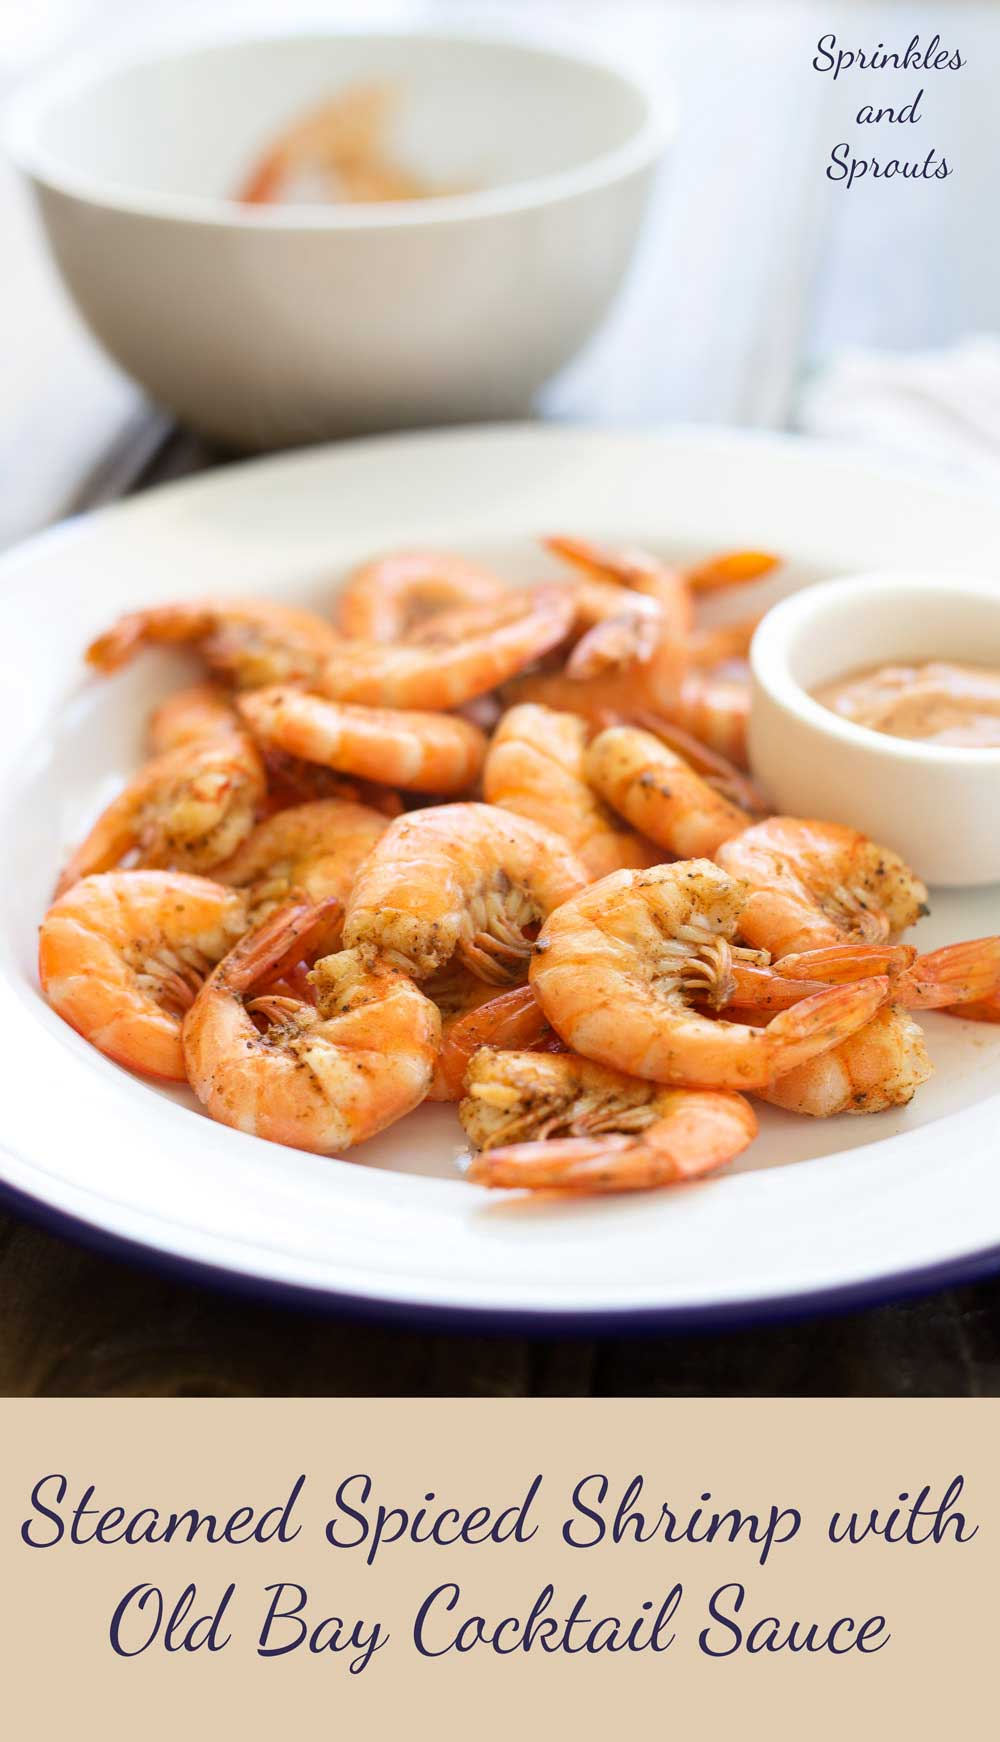 Steamed Spiced Shrimp with Old Bay Cocktail Sauce. Succulent, delicious and so moorish! This dish is simple to prepare and a sure crowd pleaser!